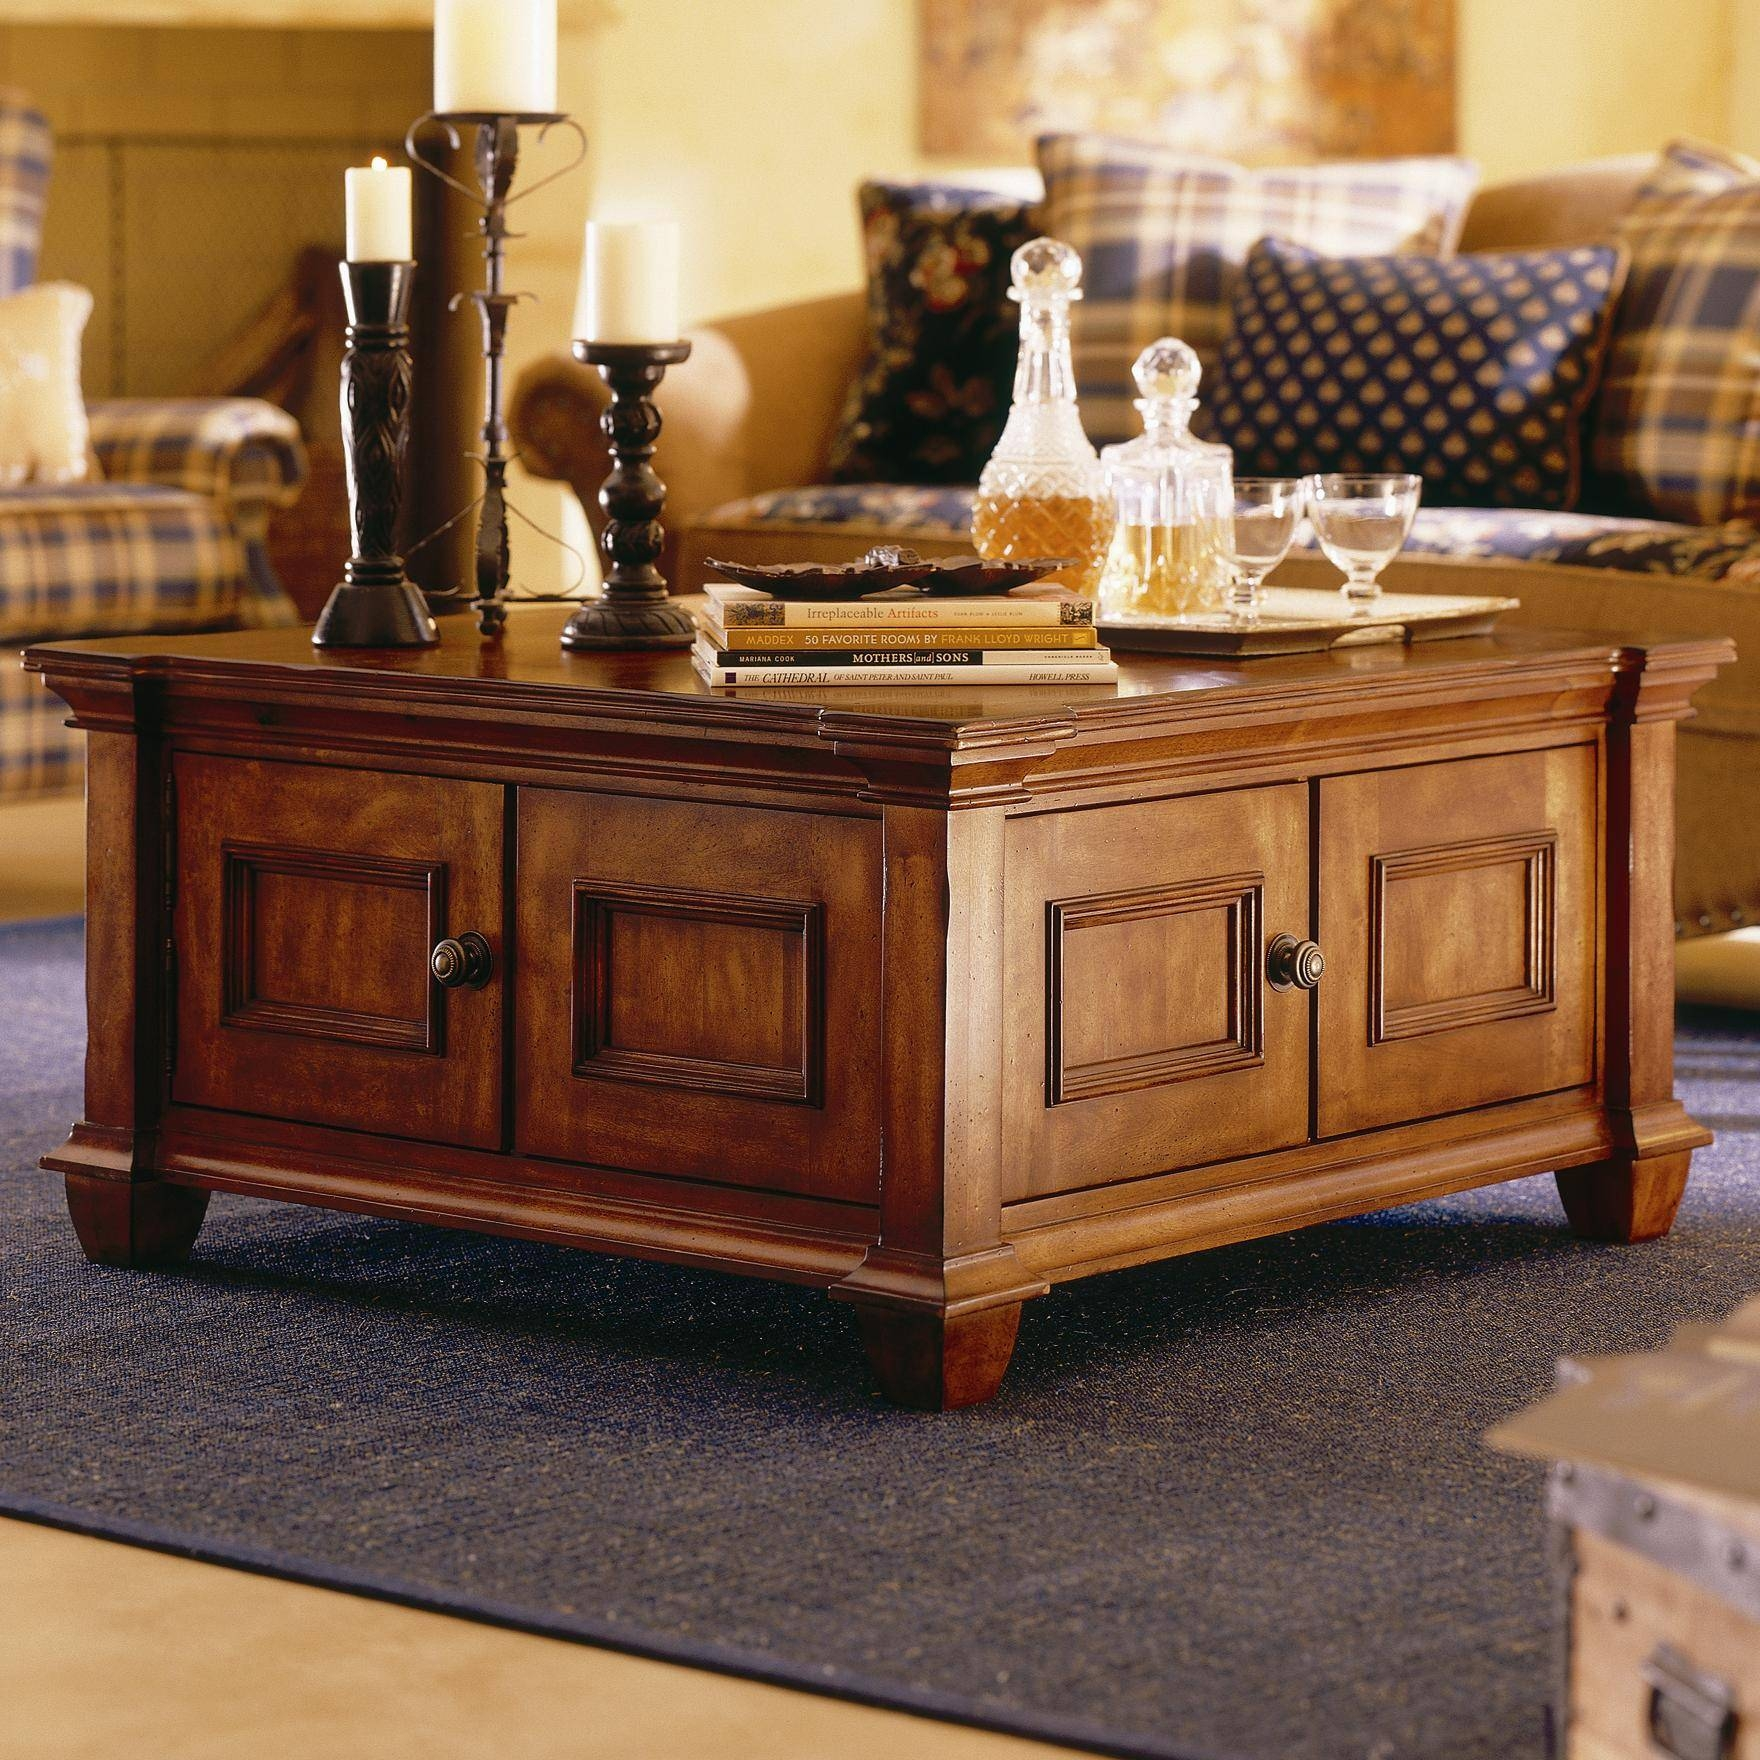 Kanson Square Coffee Table With Storage Cubes | Coffee Tables for Square Coffee Tables (Image 16 of 30)